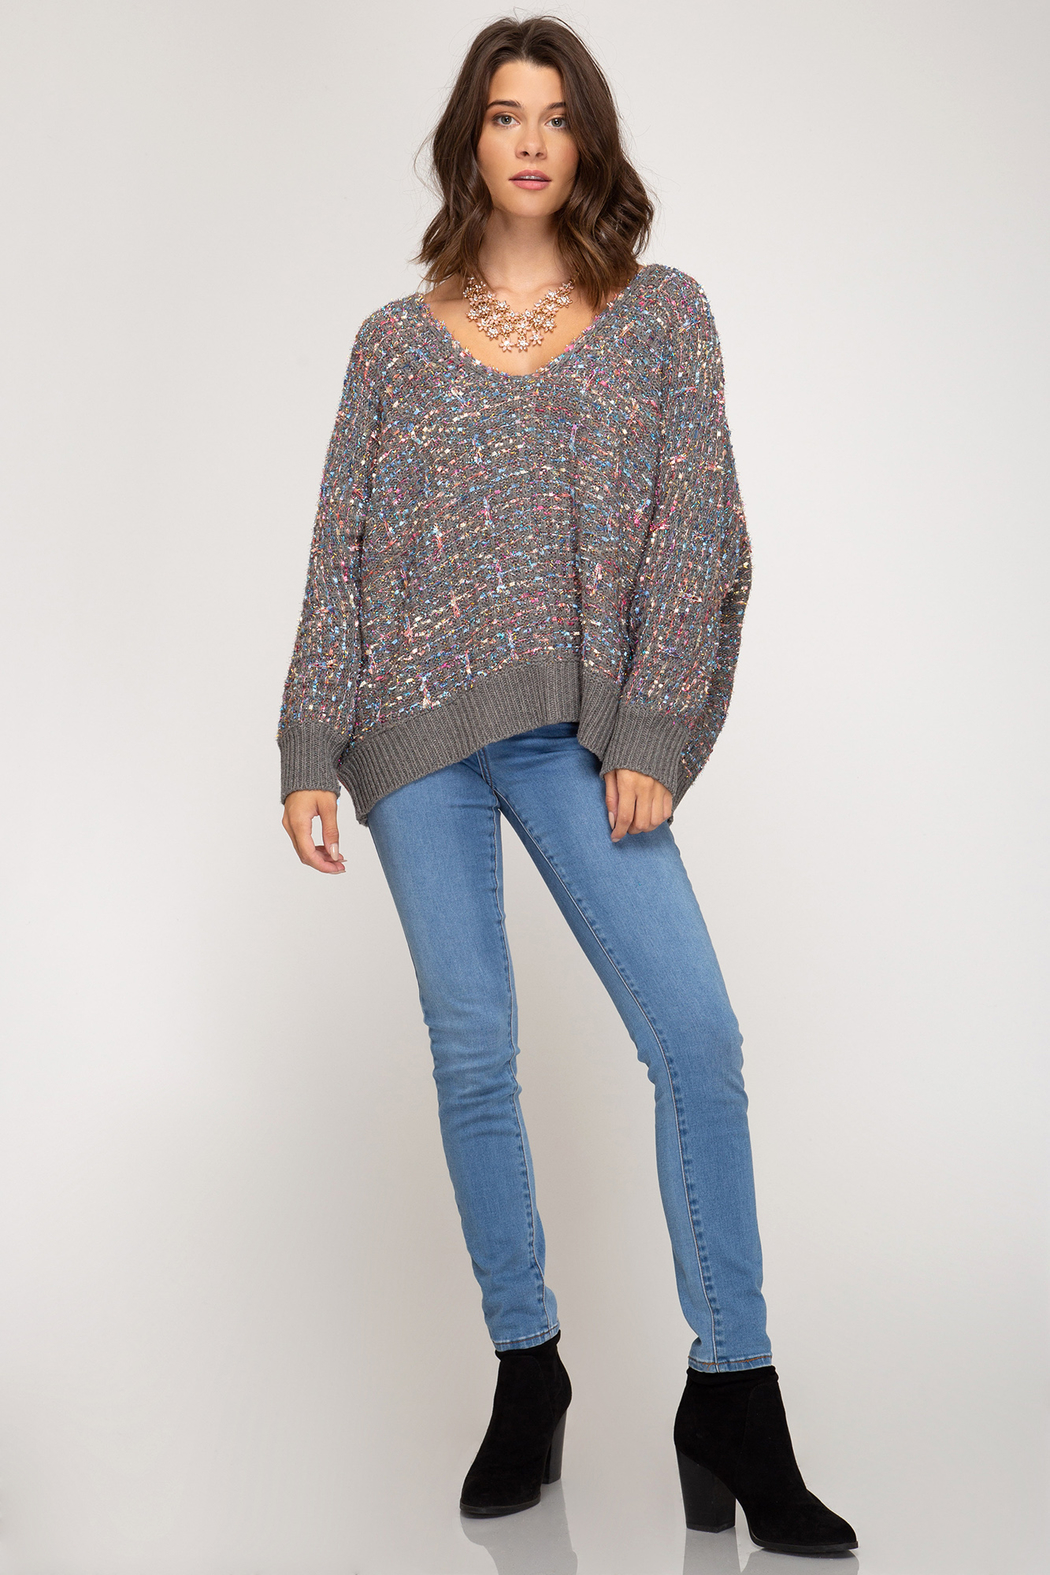 She & Sky  Lurex Boucle Sweater - Side Cropped Image